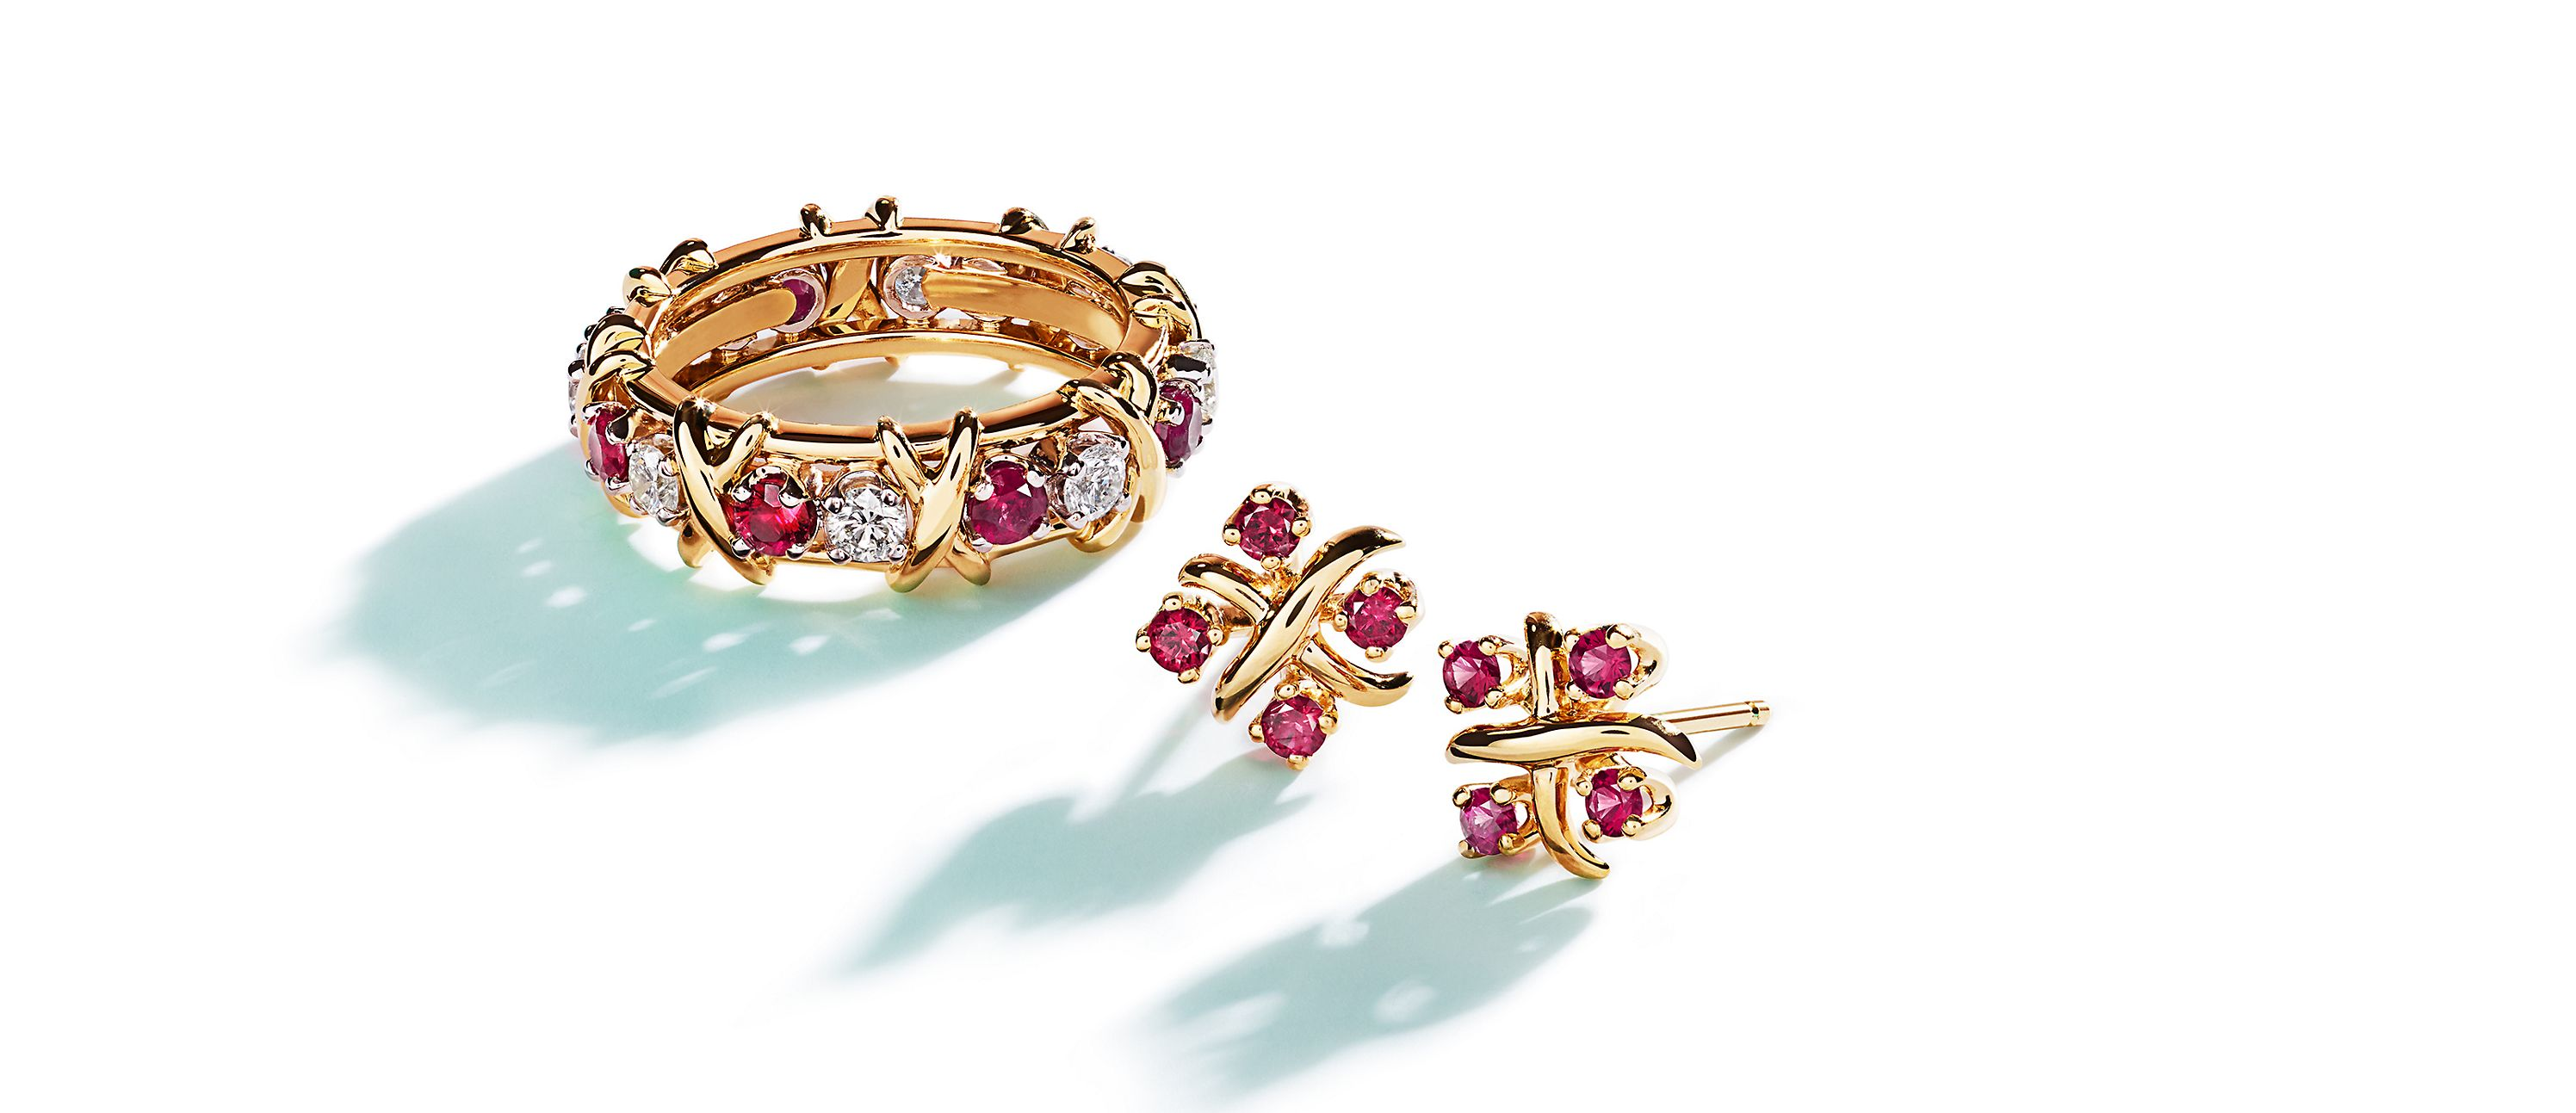 Shop Tiffany & Co. Ruby Jewellery